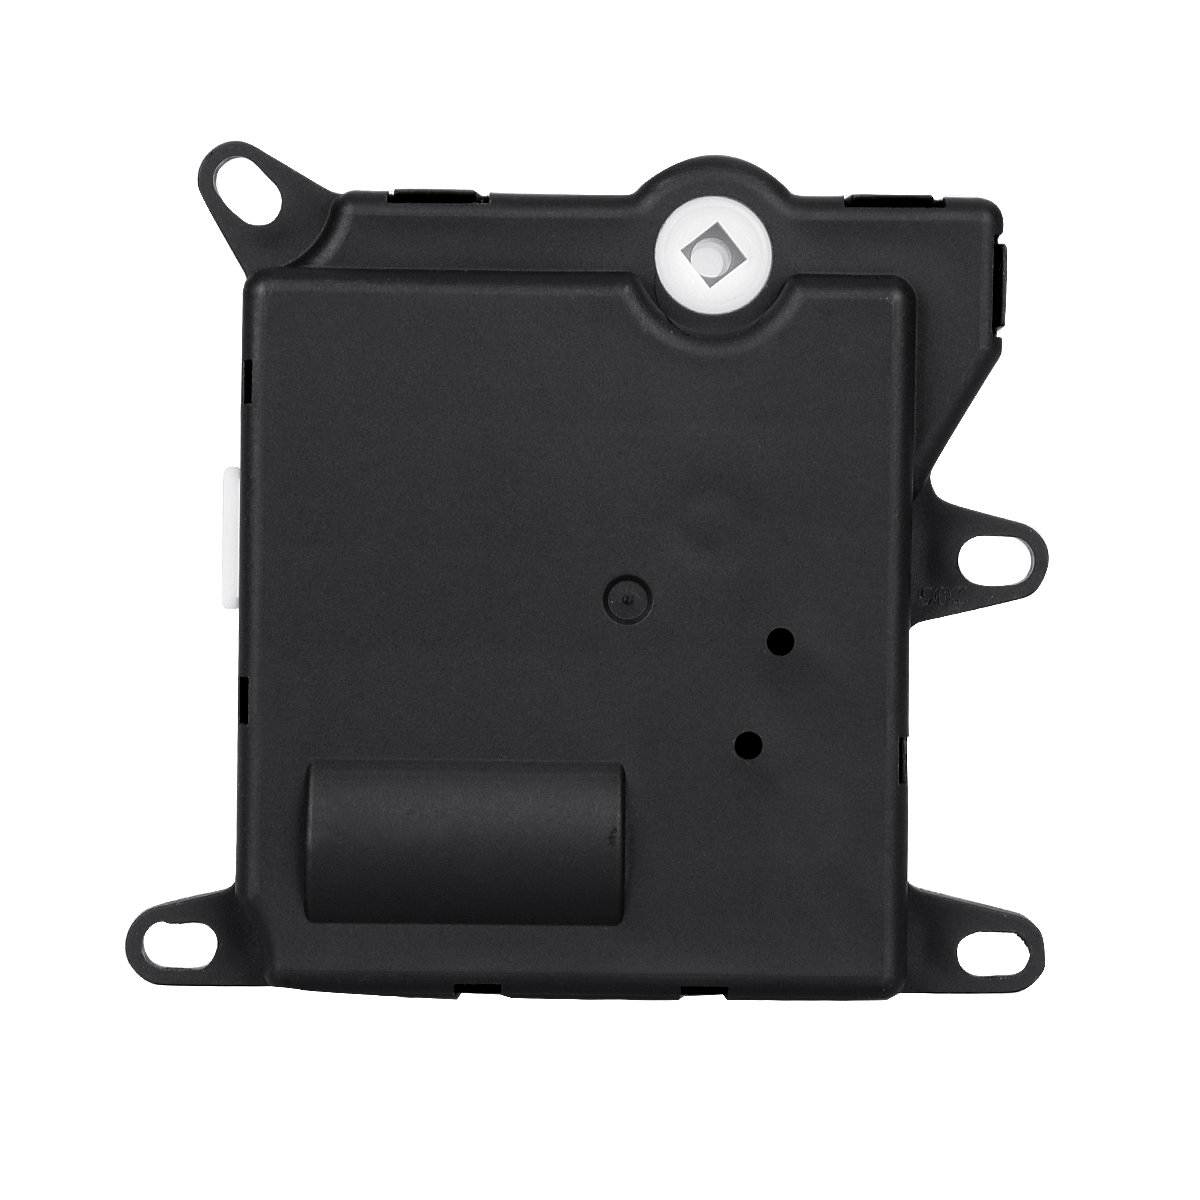 HVAC Blend Door Actuator for Ford F-150 1997 1998 1999 2000 2001 2002 2003,  Ford Expedition 1997 1998 1999 2000 2001 2002, Replace# 604-205,